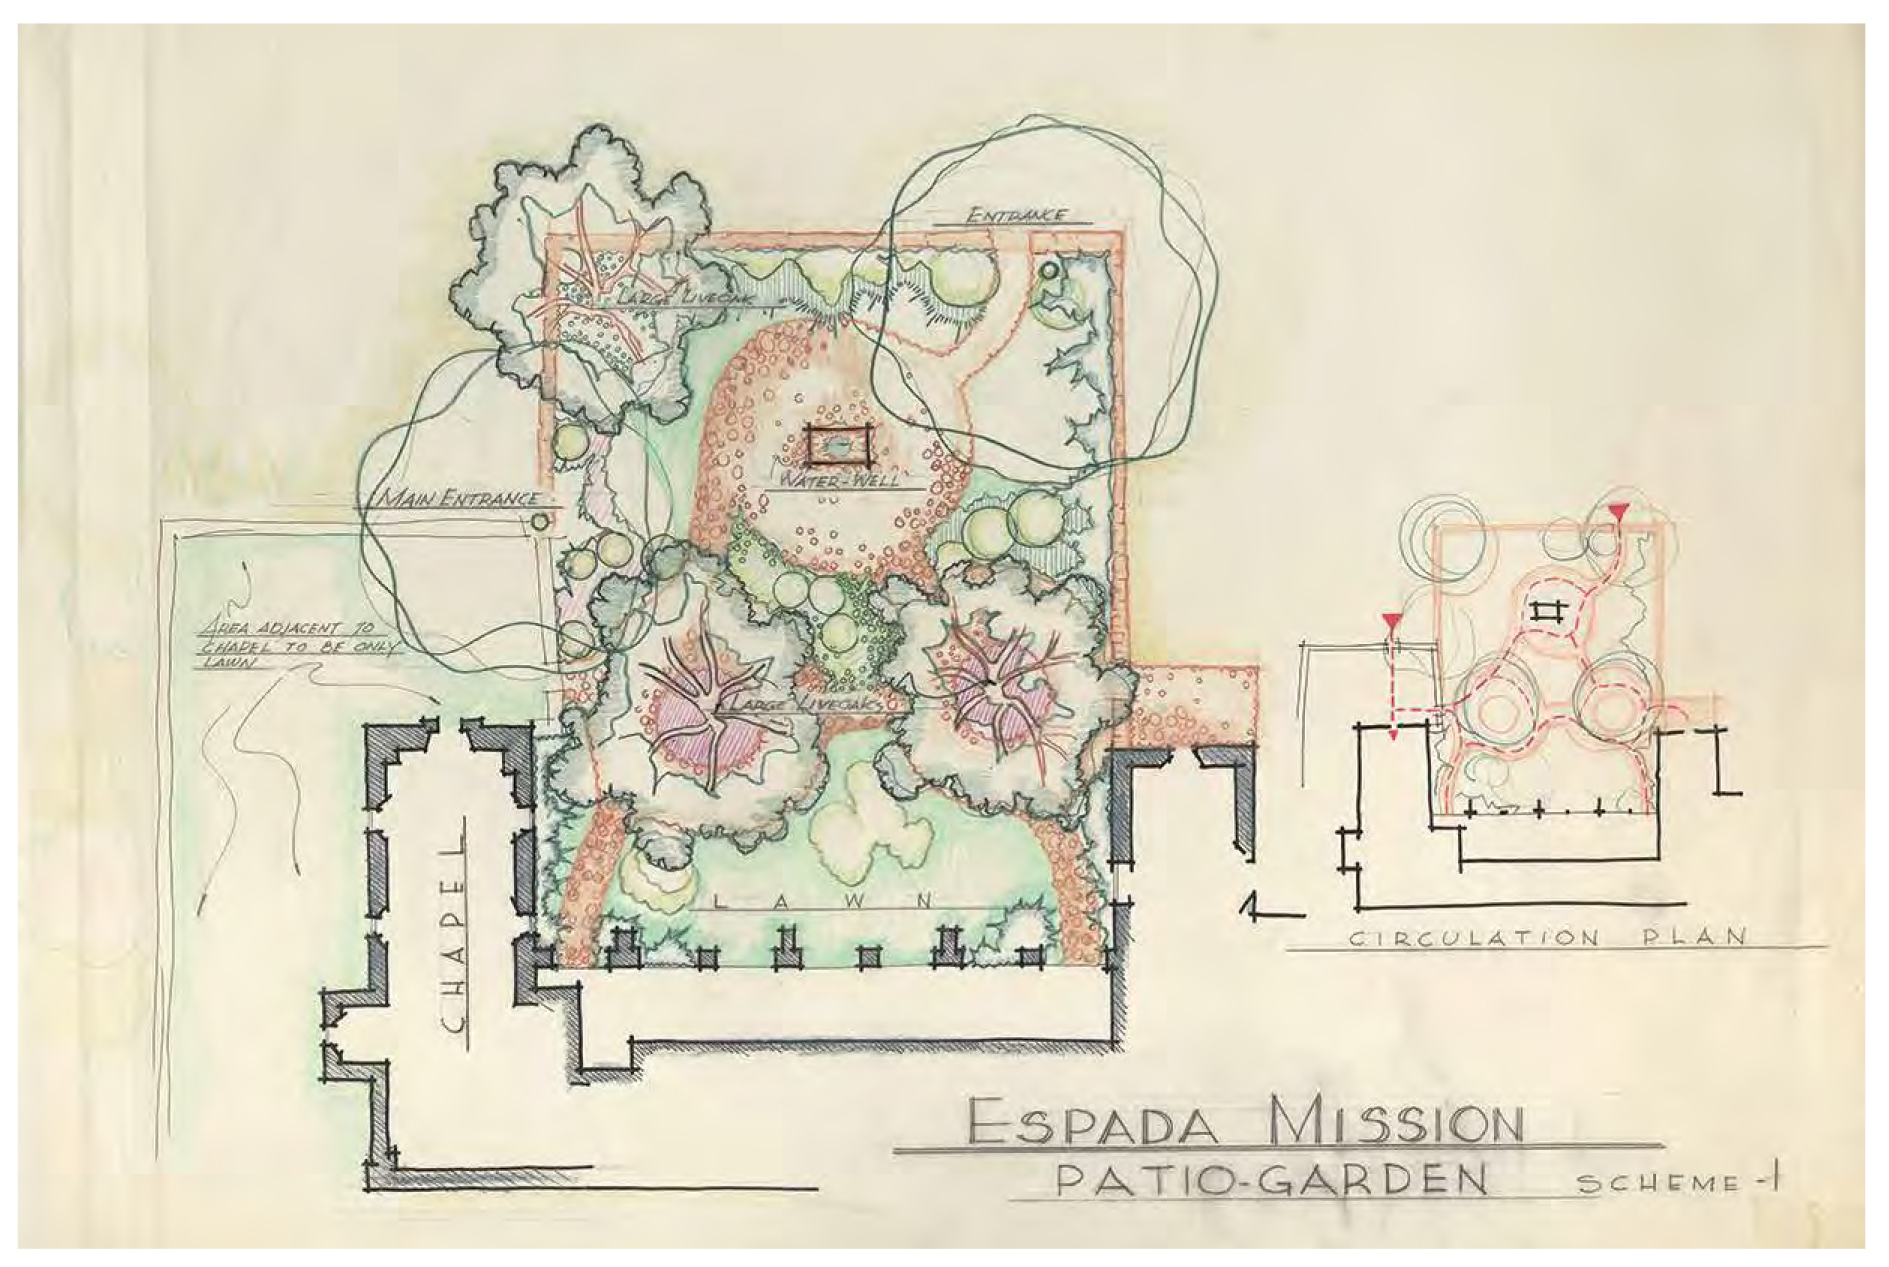 Stewart King (architect). Patio garden and circulation plan for Mission San Francisco de la Espada, Scheme 1, San Antonio, Texas. ca. 1957. Marker, pencil, and crayon on paper. 21.5 x 32.25 in. Stewart King collection. Alexander Architectural Archive.